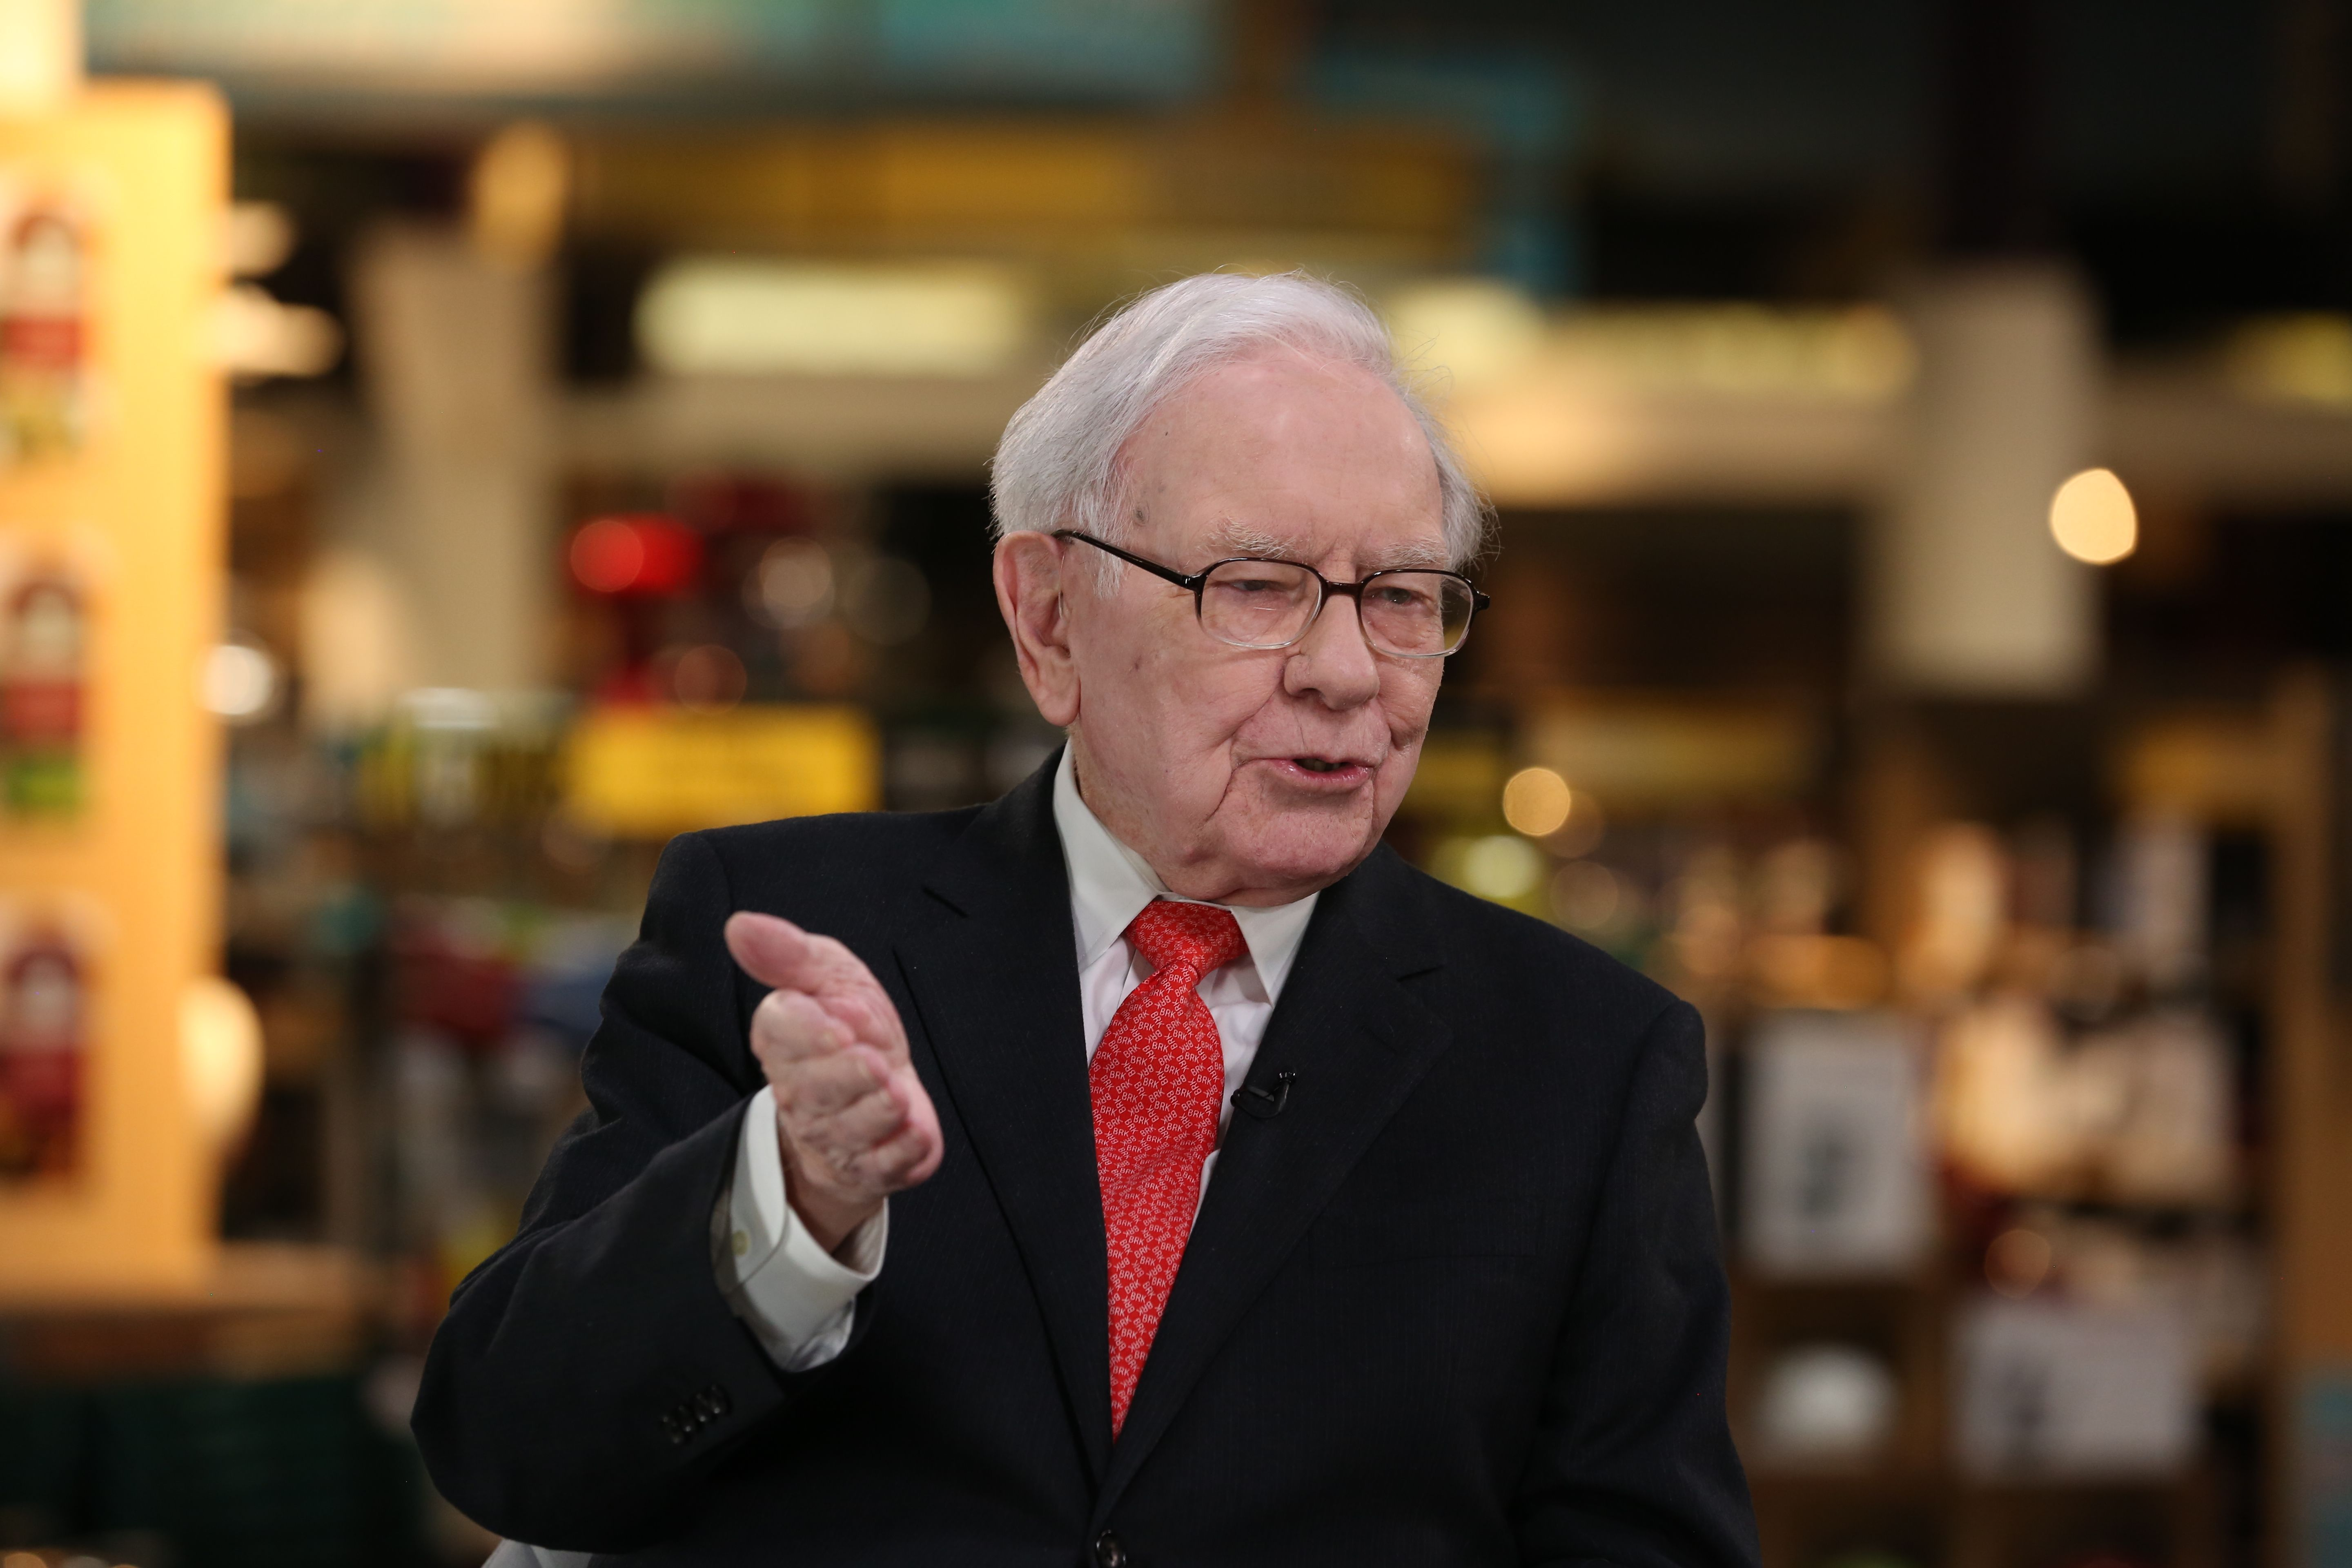 Warren Buffett says bitcoin is a 'gambling device' with 'a lot of frauds connected with it'